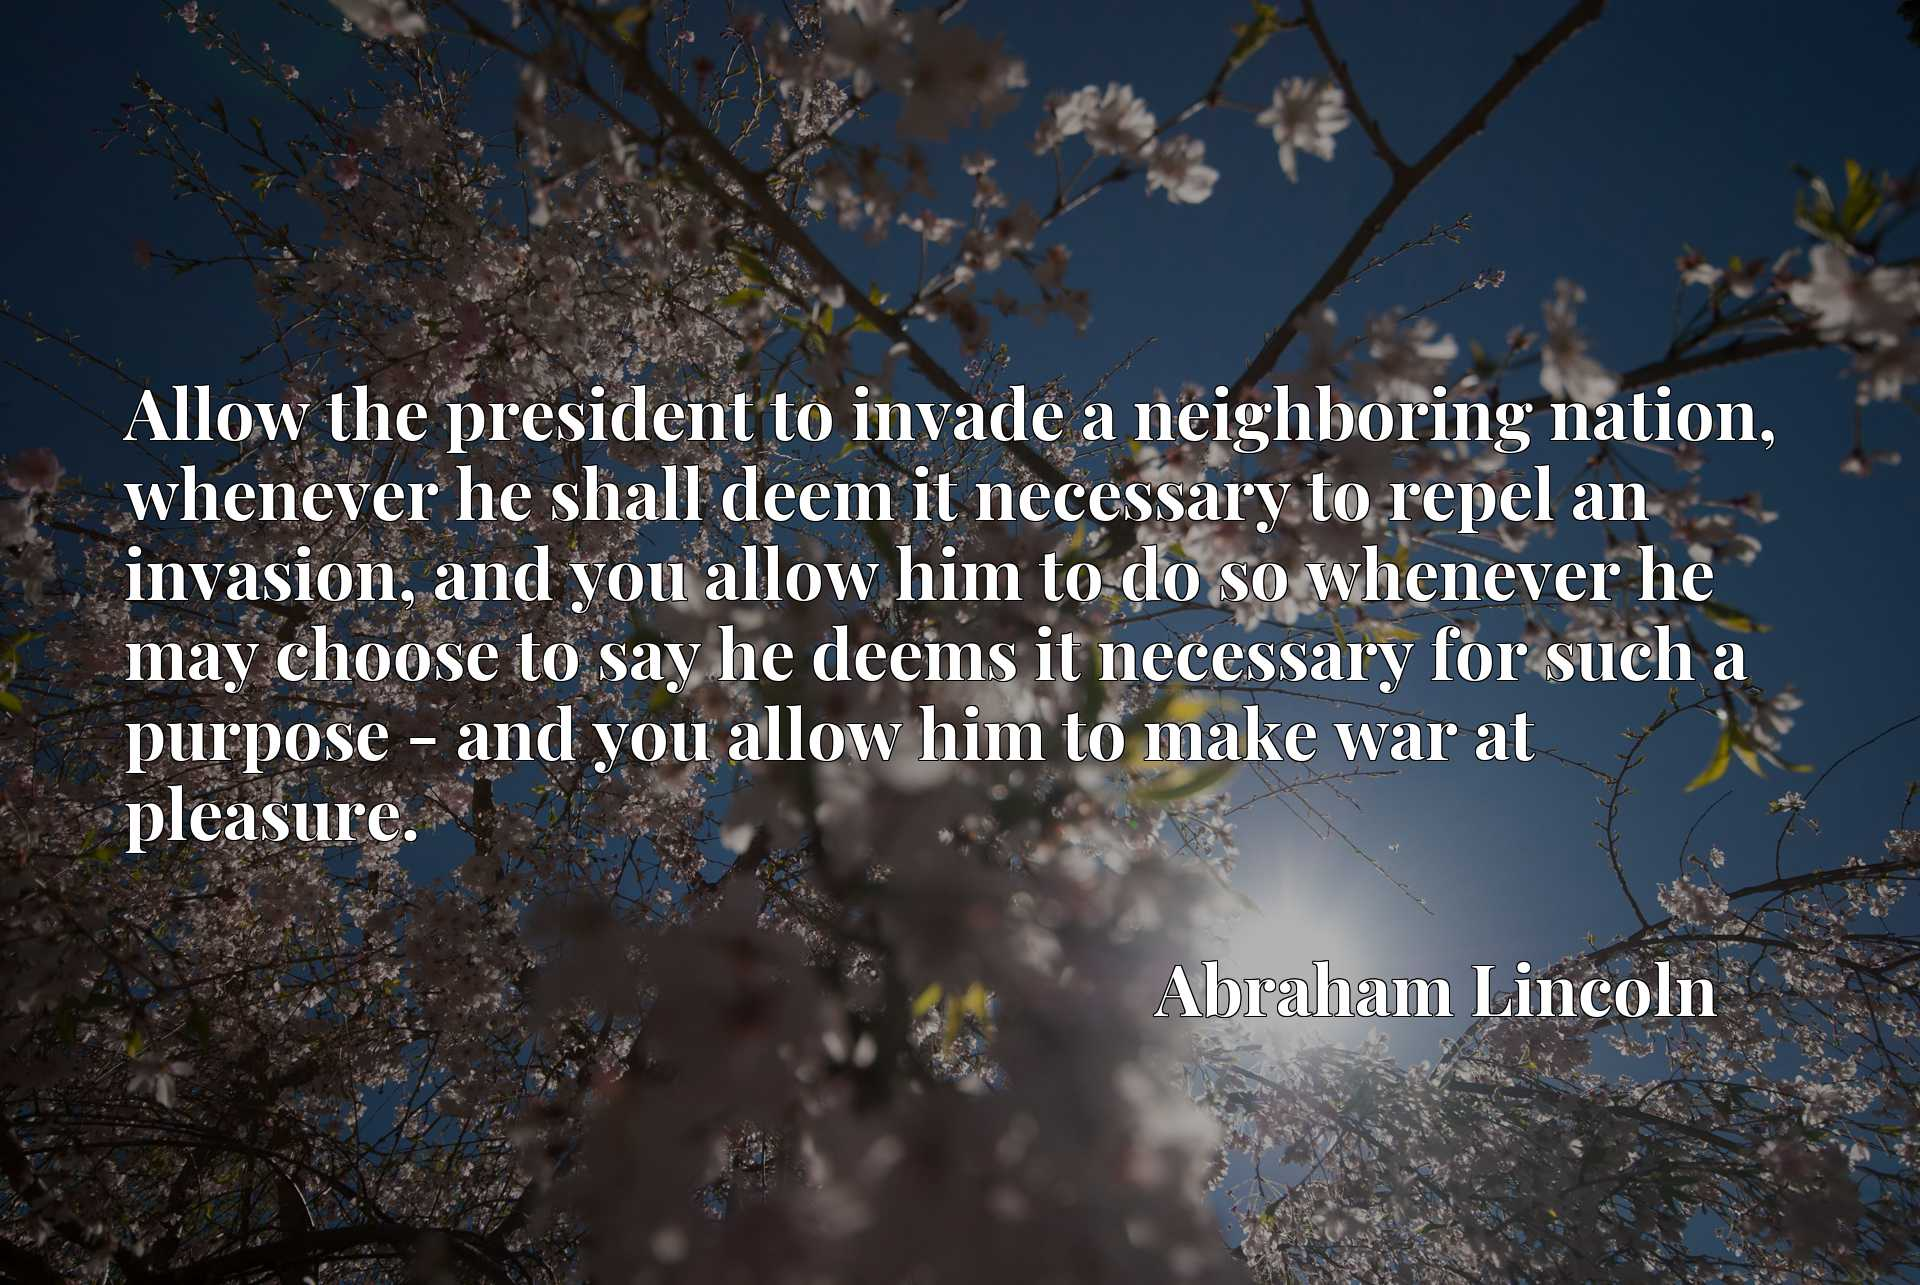 Allow the president to invade a neighboring nation, whenever he shall deem it necessary to repel an invasion, and you allow him to do so whenever he may choose to say he deems it necessary for such a purpose - and you allow him to make war at pleasure.